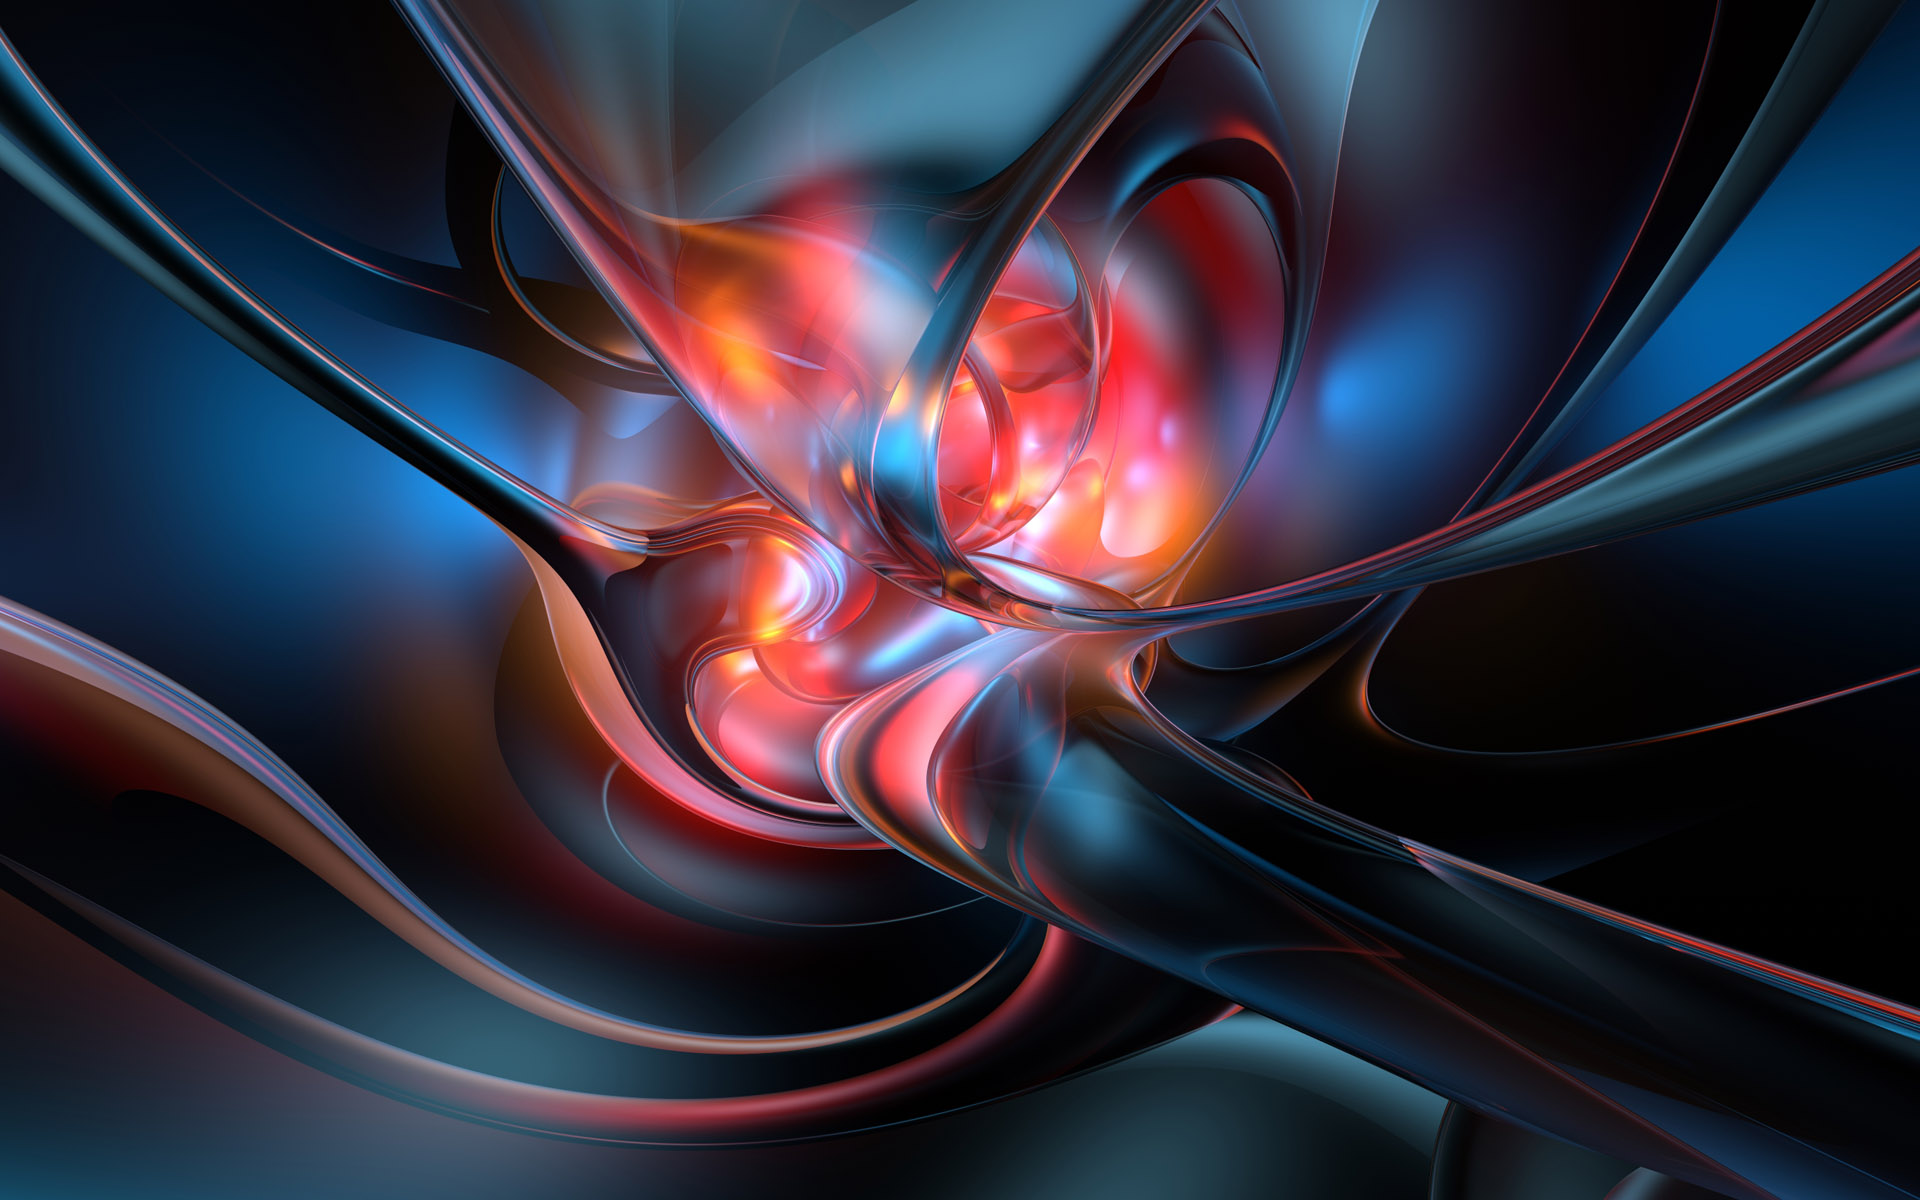 3D Abstract Desktop Wallpaper - WallpaperSafari